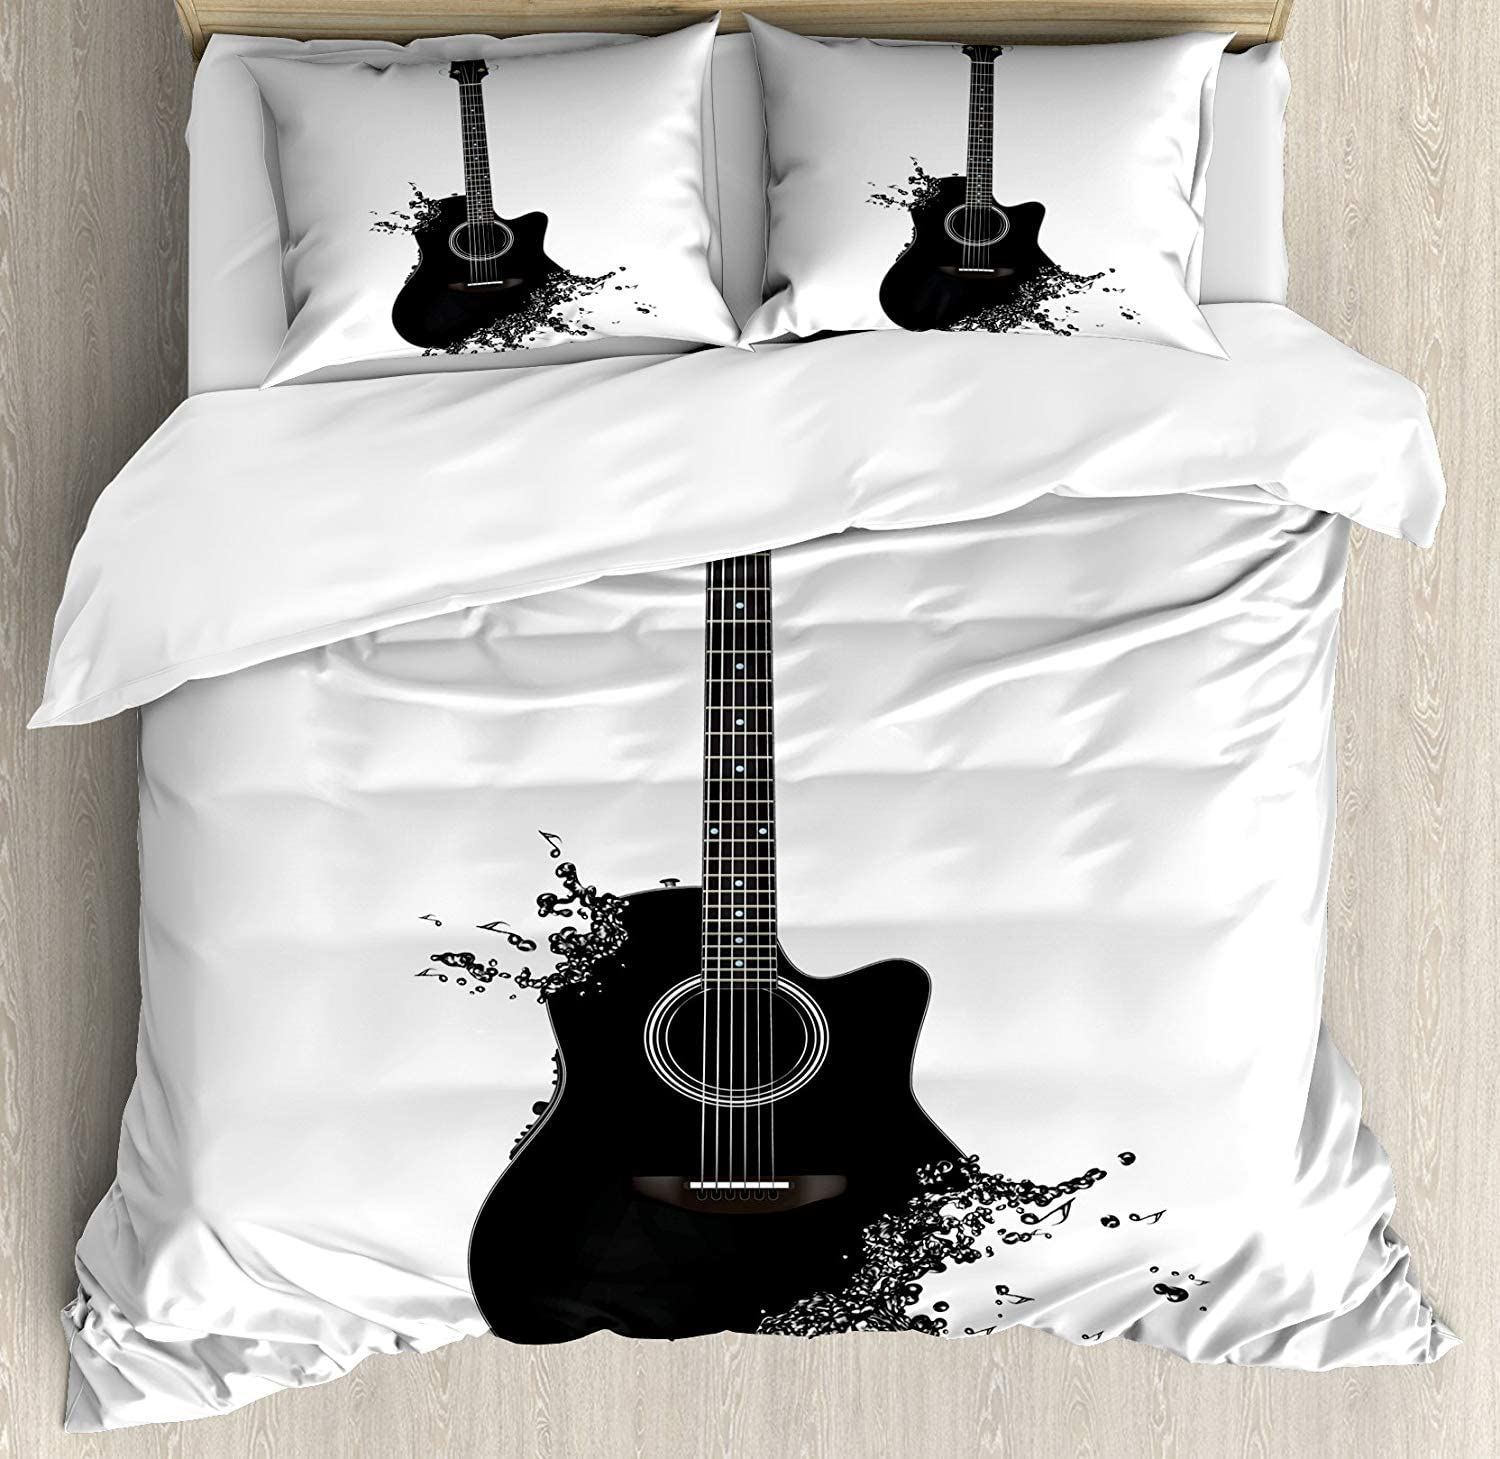 Geometric Guitar Funky Print Music Quilted Bedspread /& Pillow Shams Set